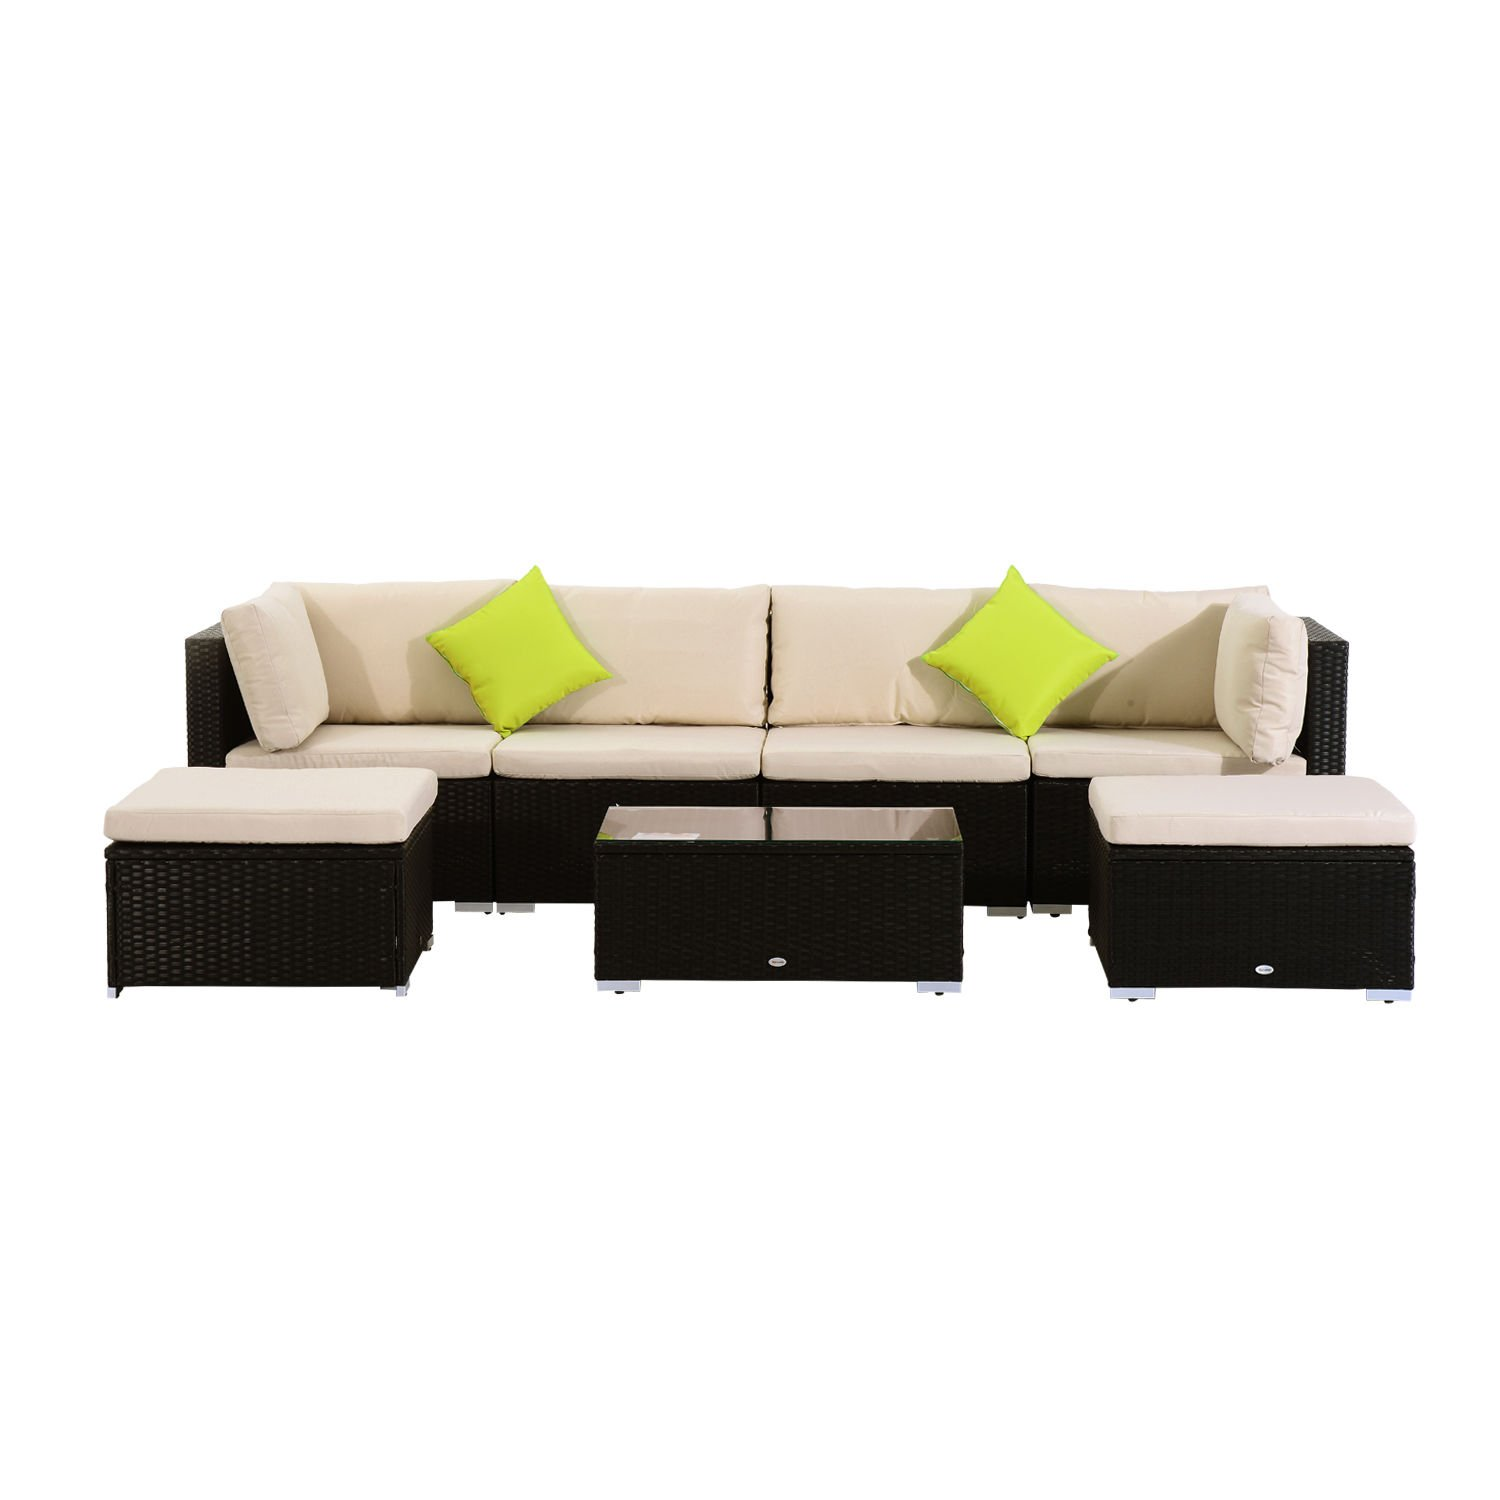 Gartenmöbel Rattan Couch Outsunny Poly Rattan Gartenmöbel 21tlg Rattan Garten Set